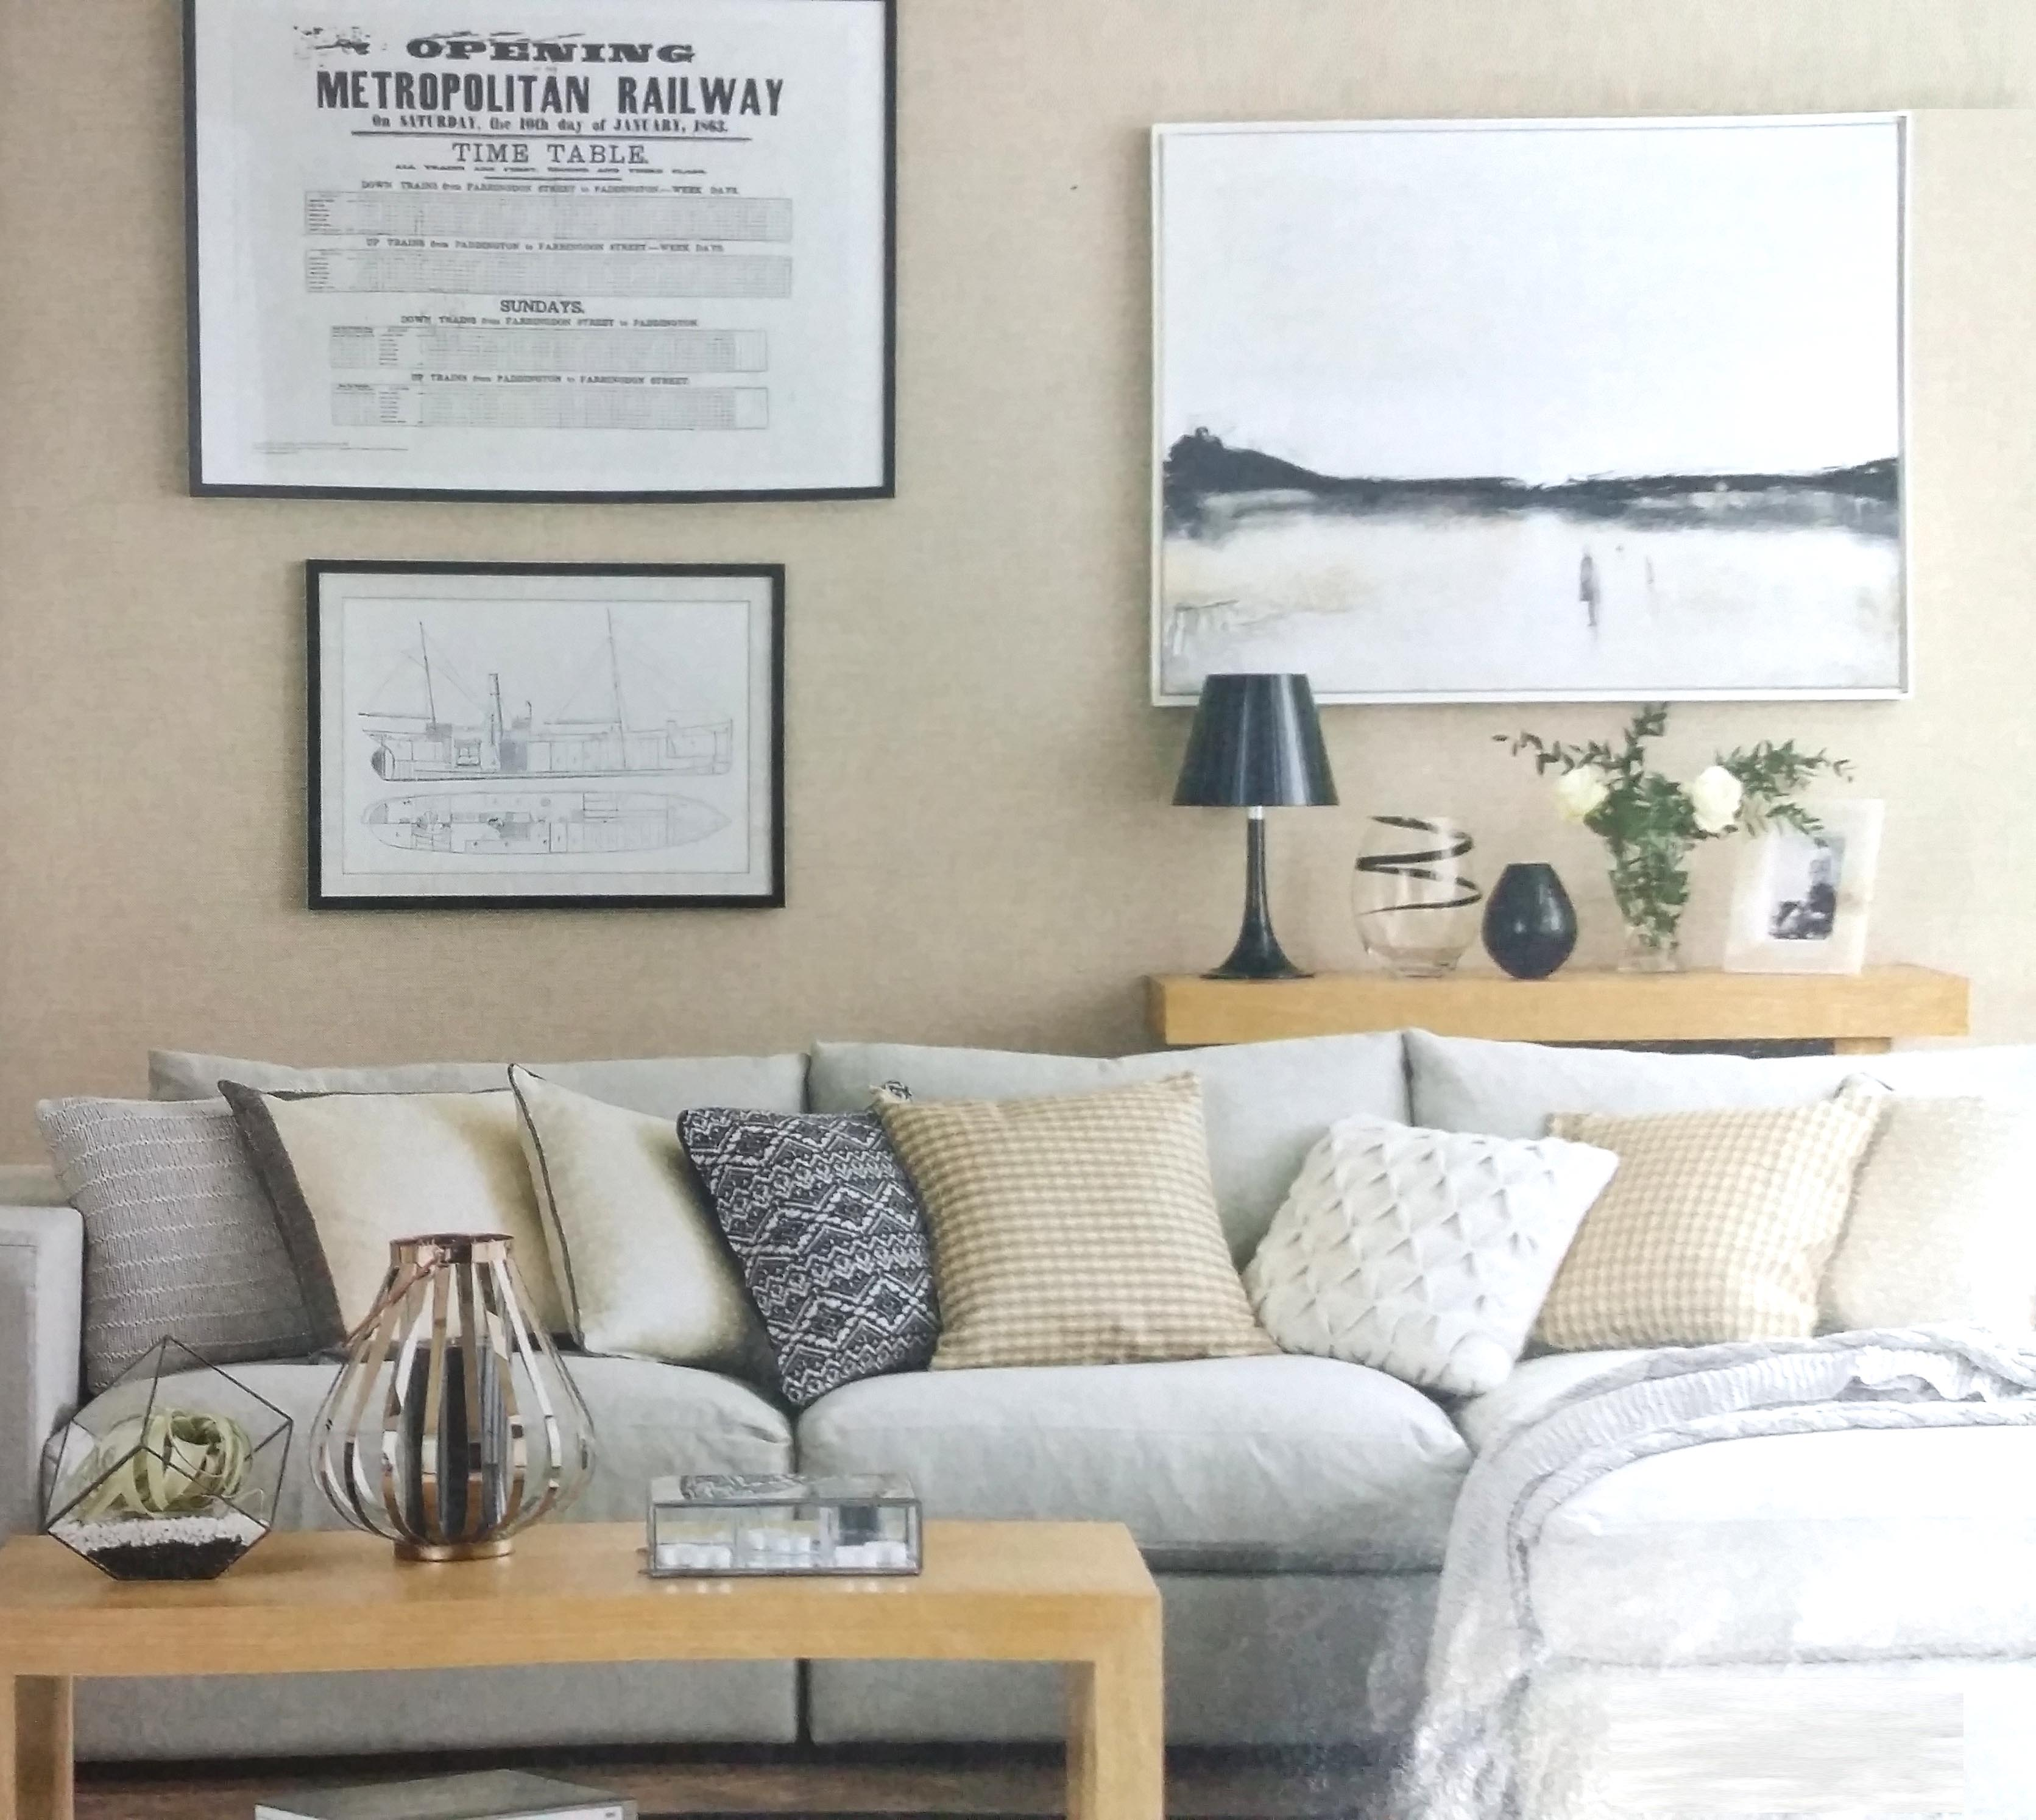 The Smart Home Decor – Not just another home decor site